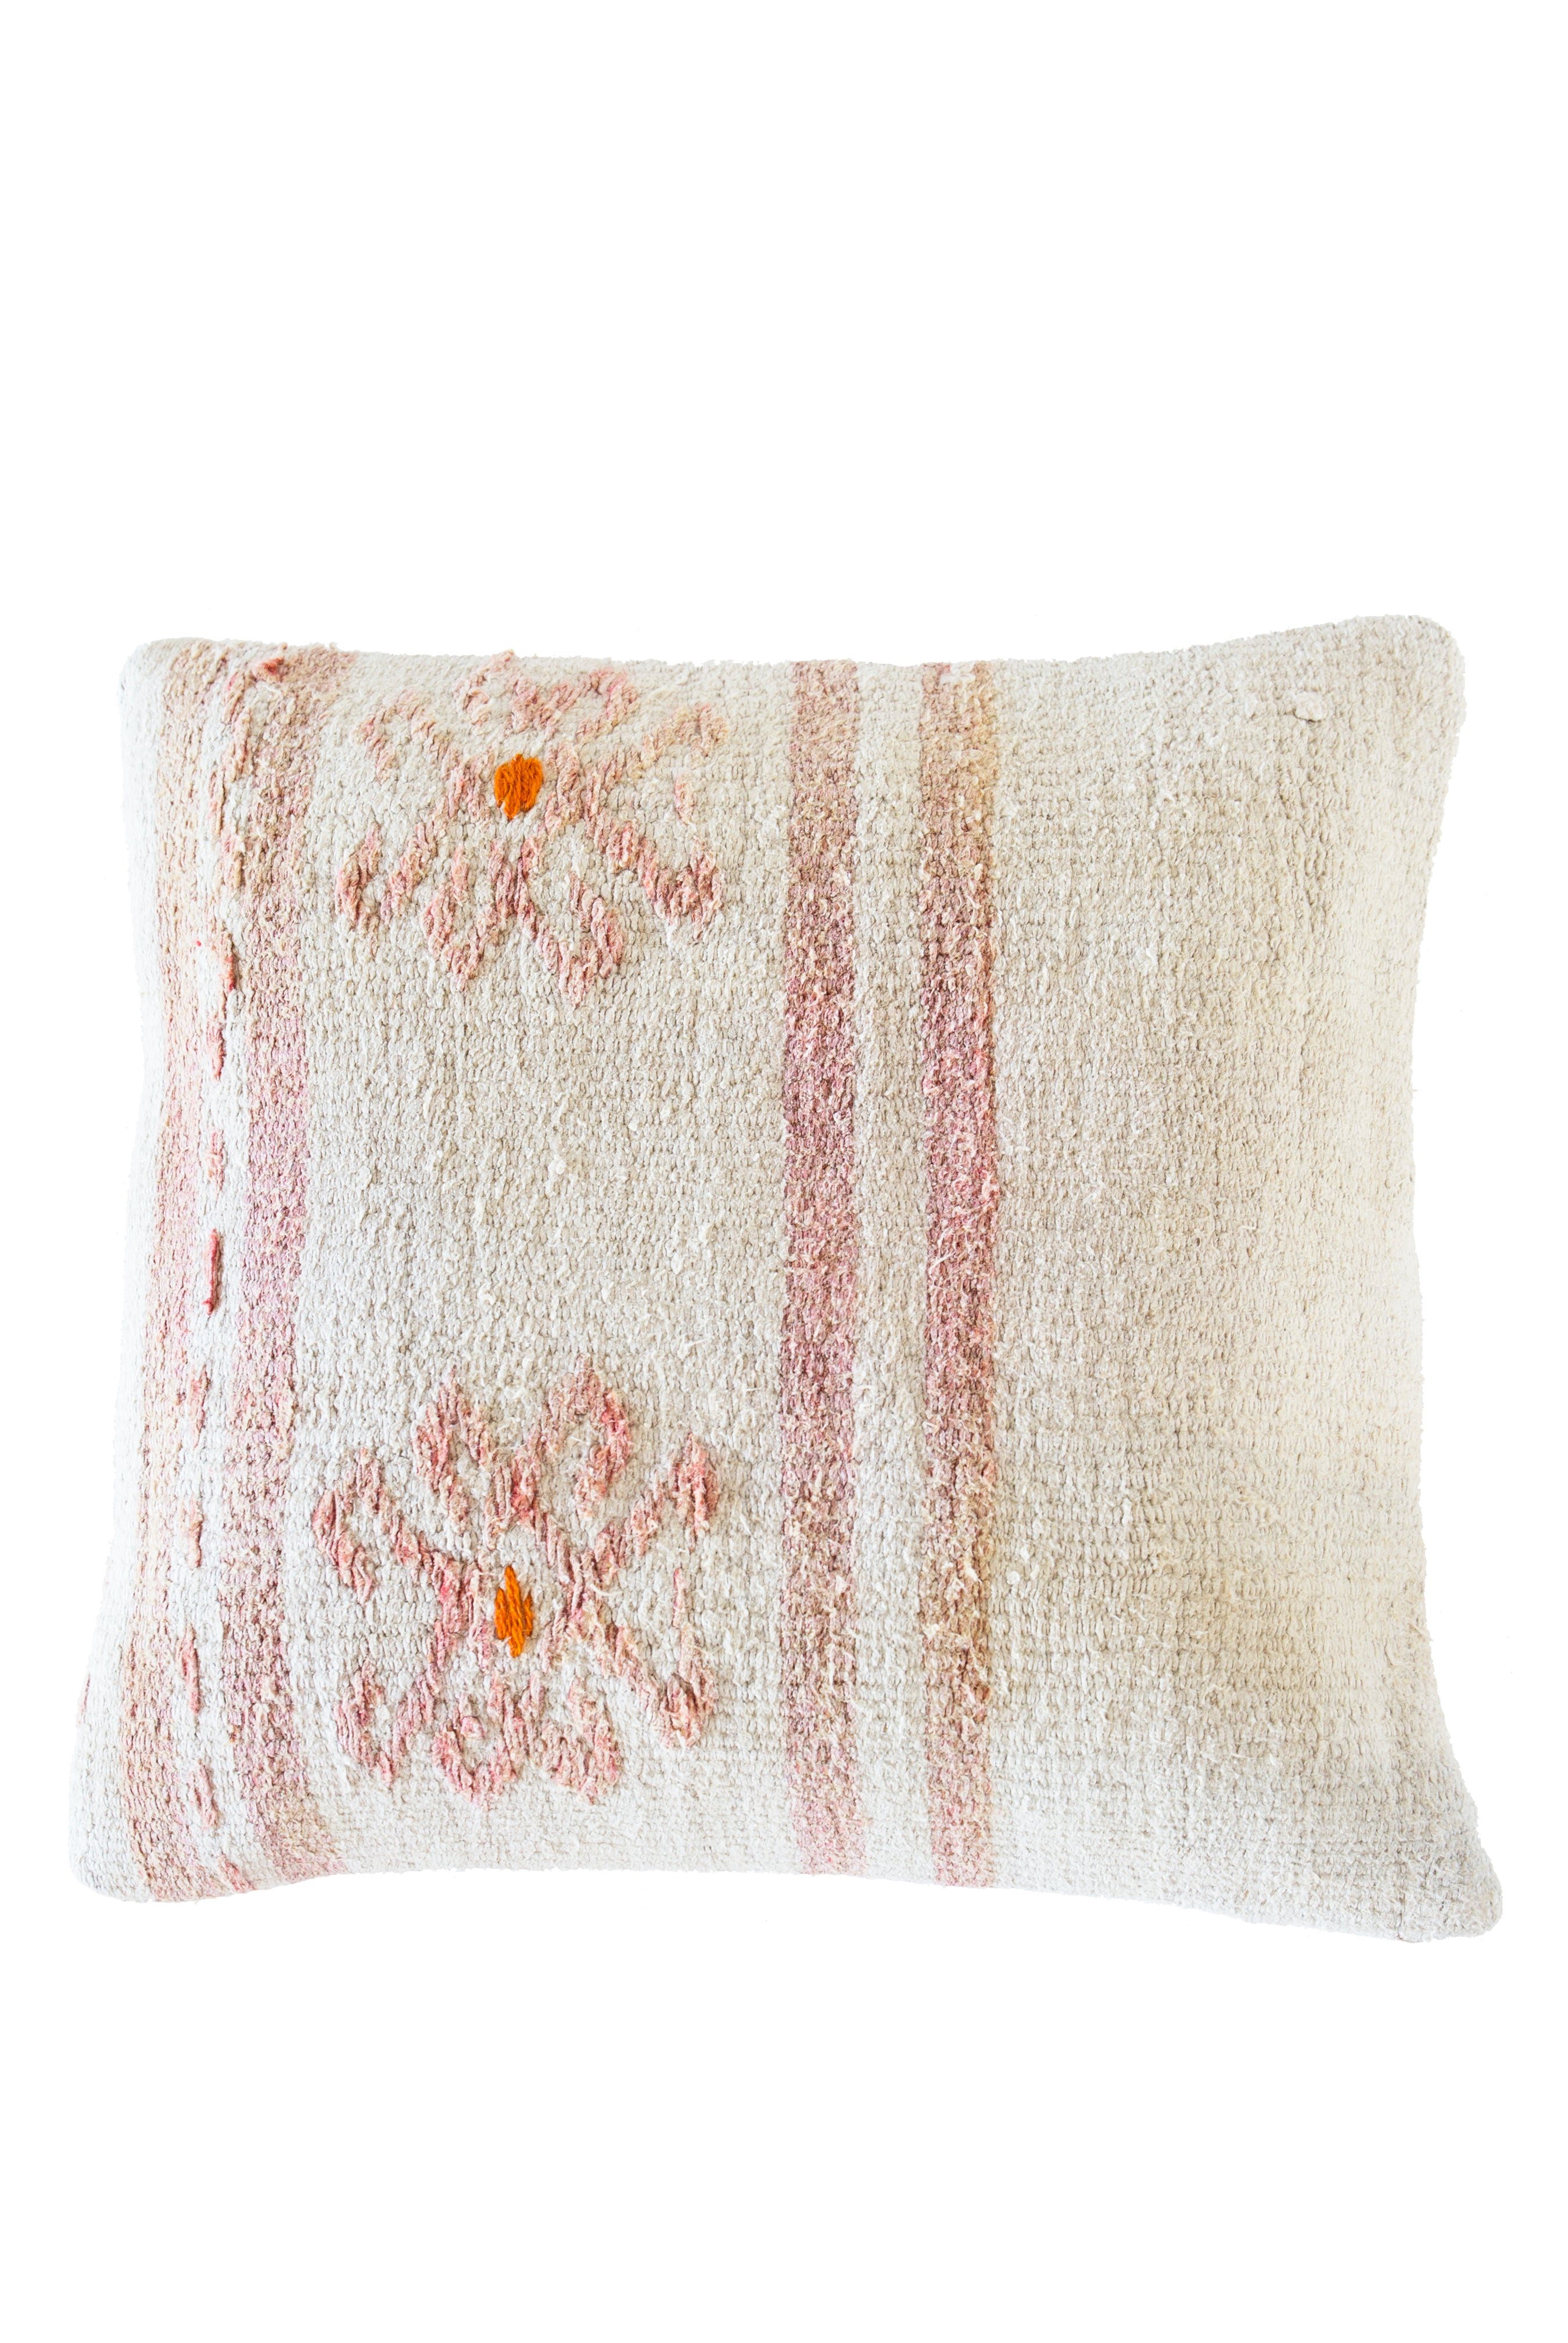 Press Turkish Kilim Cushion